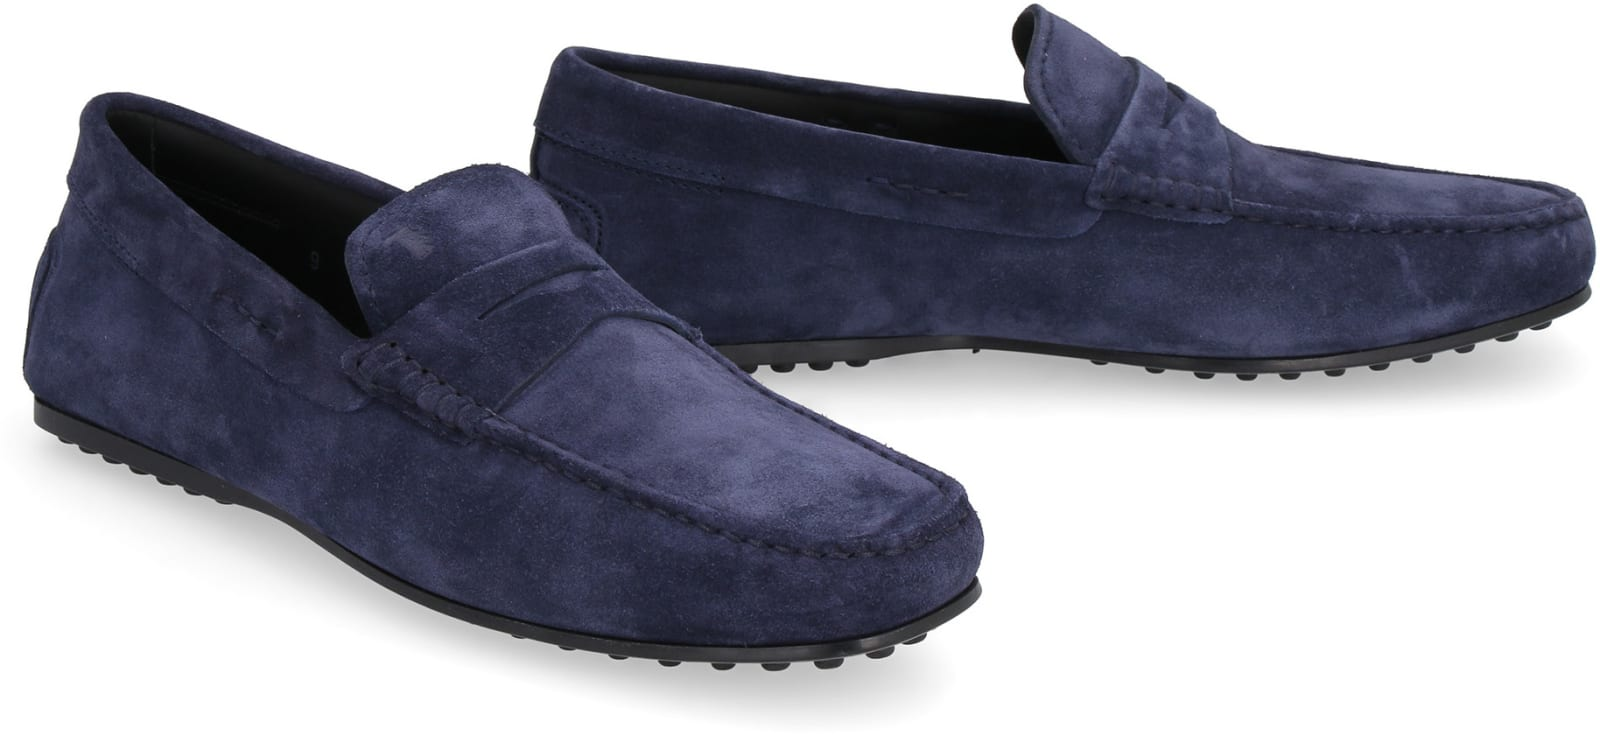 60484f93a Tod's Tod's City Gommino Suede Loafers - blue - 11008126 | italist